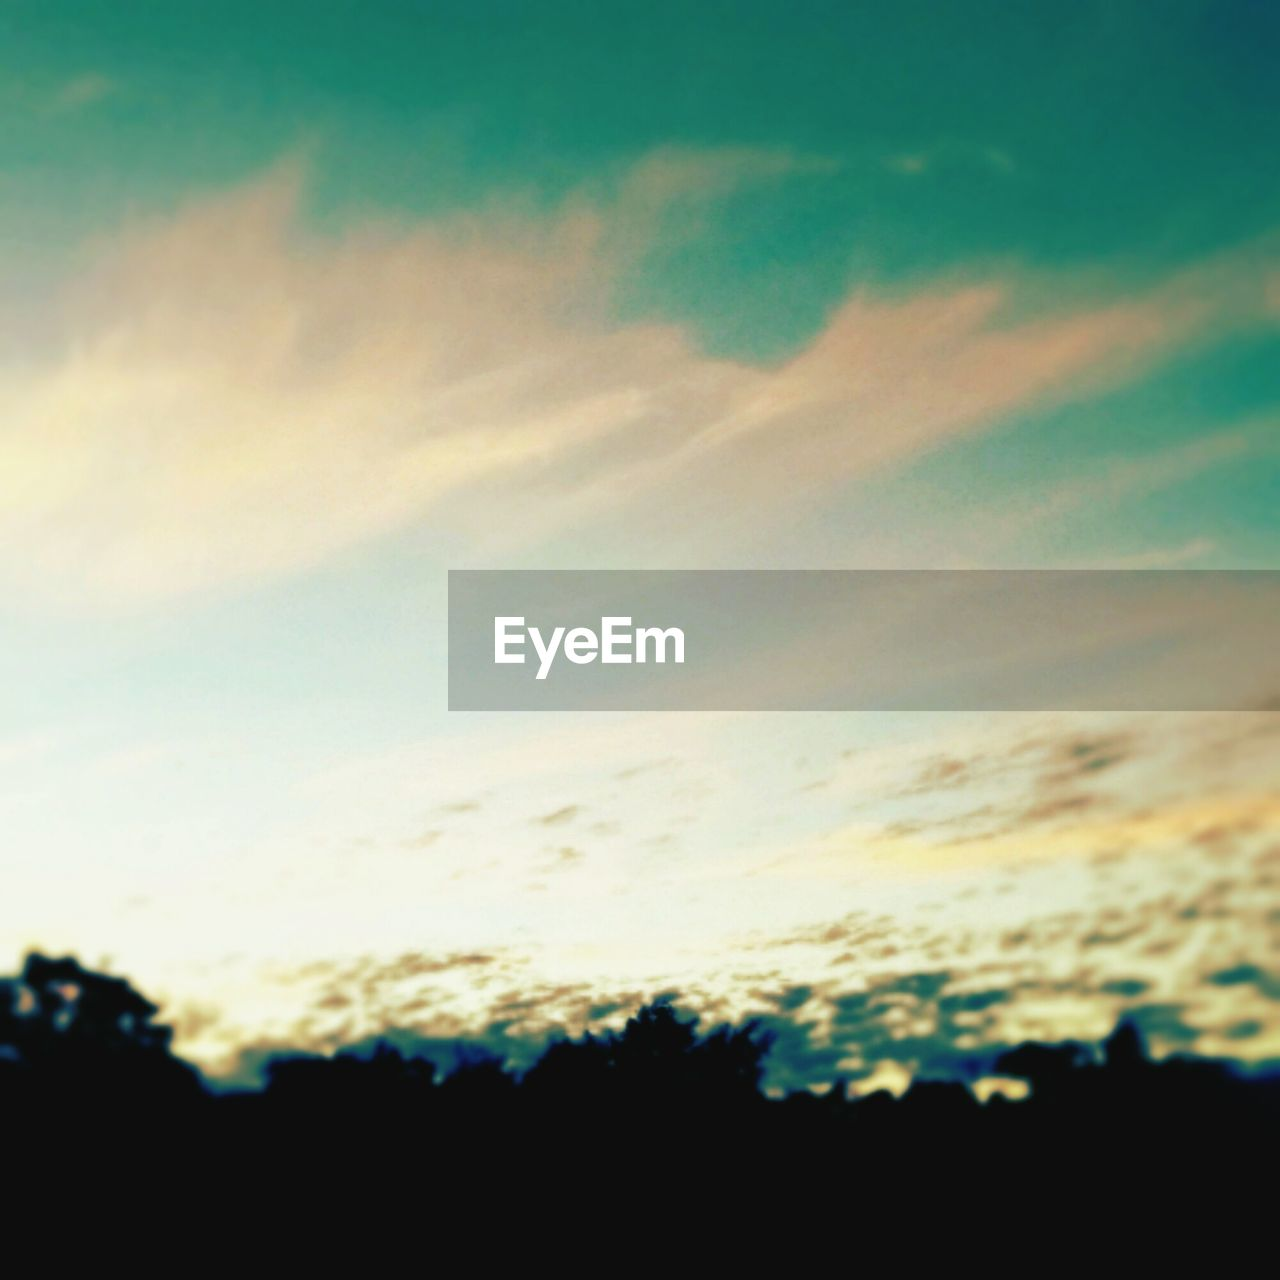 silhouette, nature, sky, sunset, beauty in nature, scenics, cloud - sky, outdoors, tranquil scene, dramatic sky, tranquility, no people, backgrounds, low angle view, sky only, day